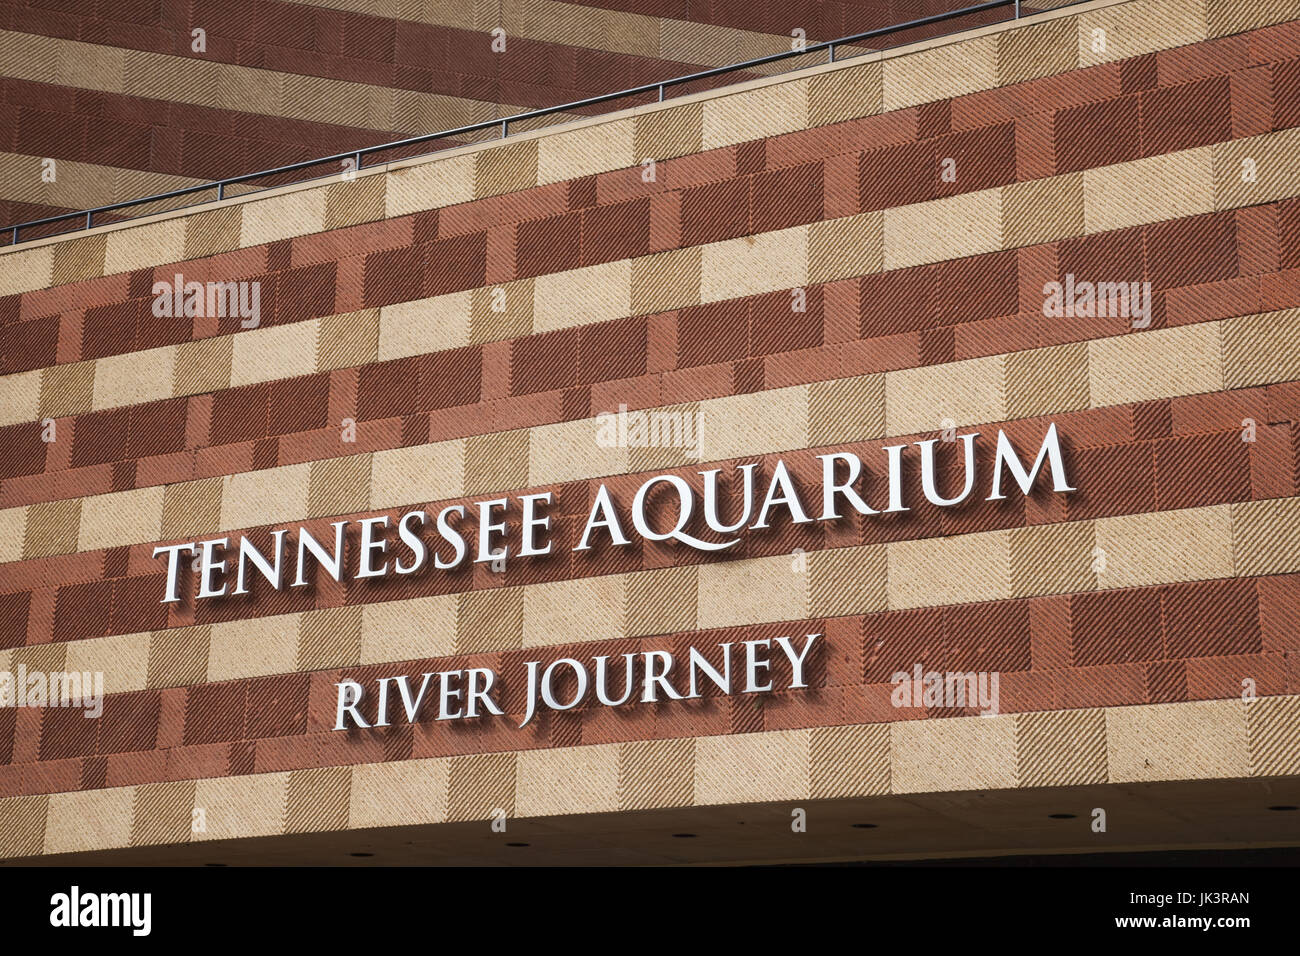 USA, Tennessee, Chattanooga, Tennessee Aquarium, exterior sign - Stock Image